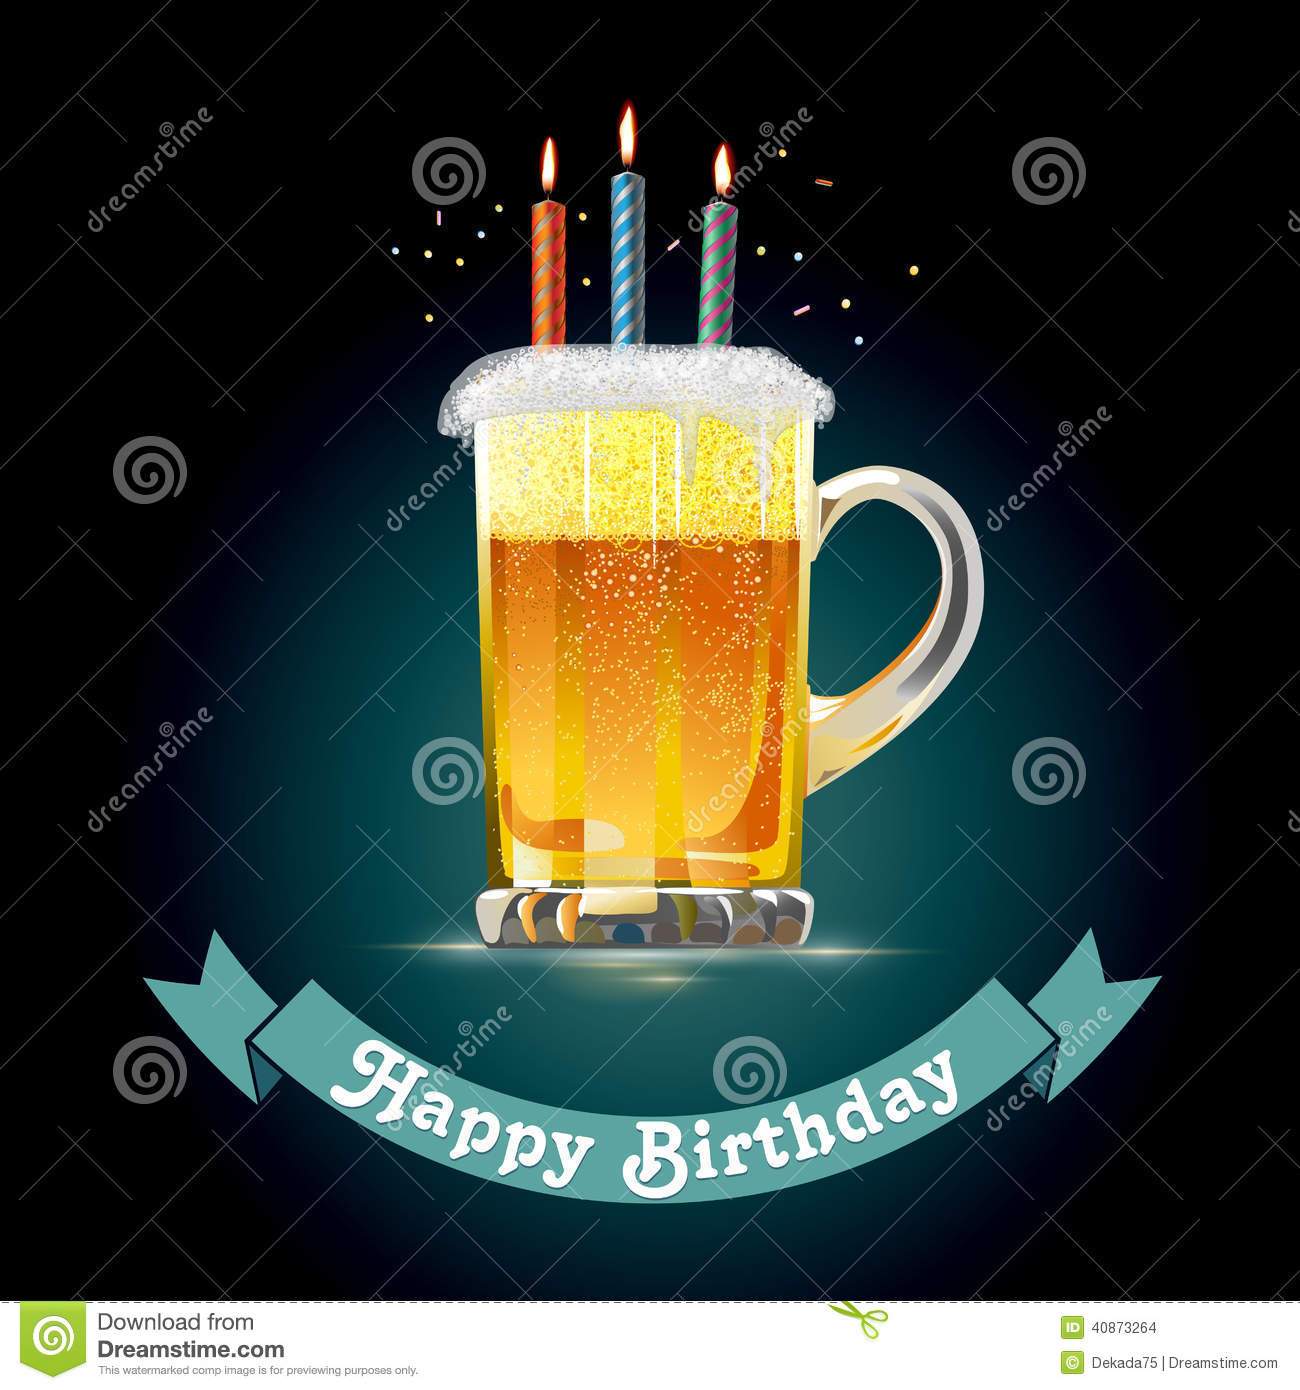 happy birthday hombre ; happy-birthday-card-person-who-loves-beer-mug-candles-40873264